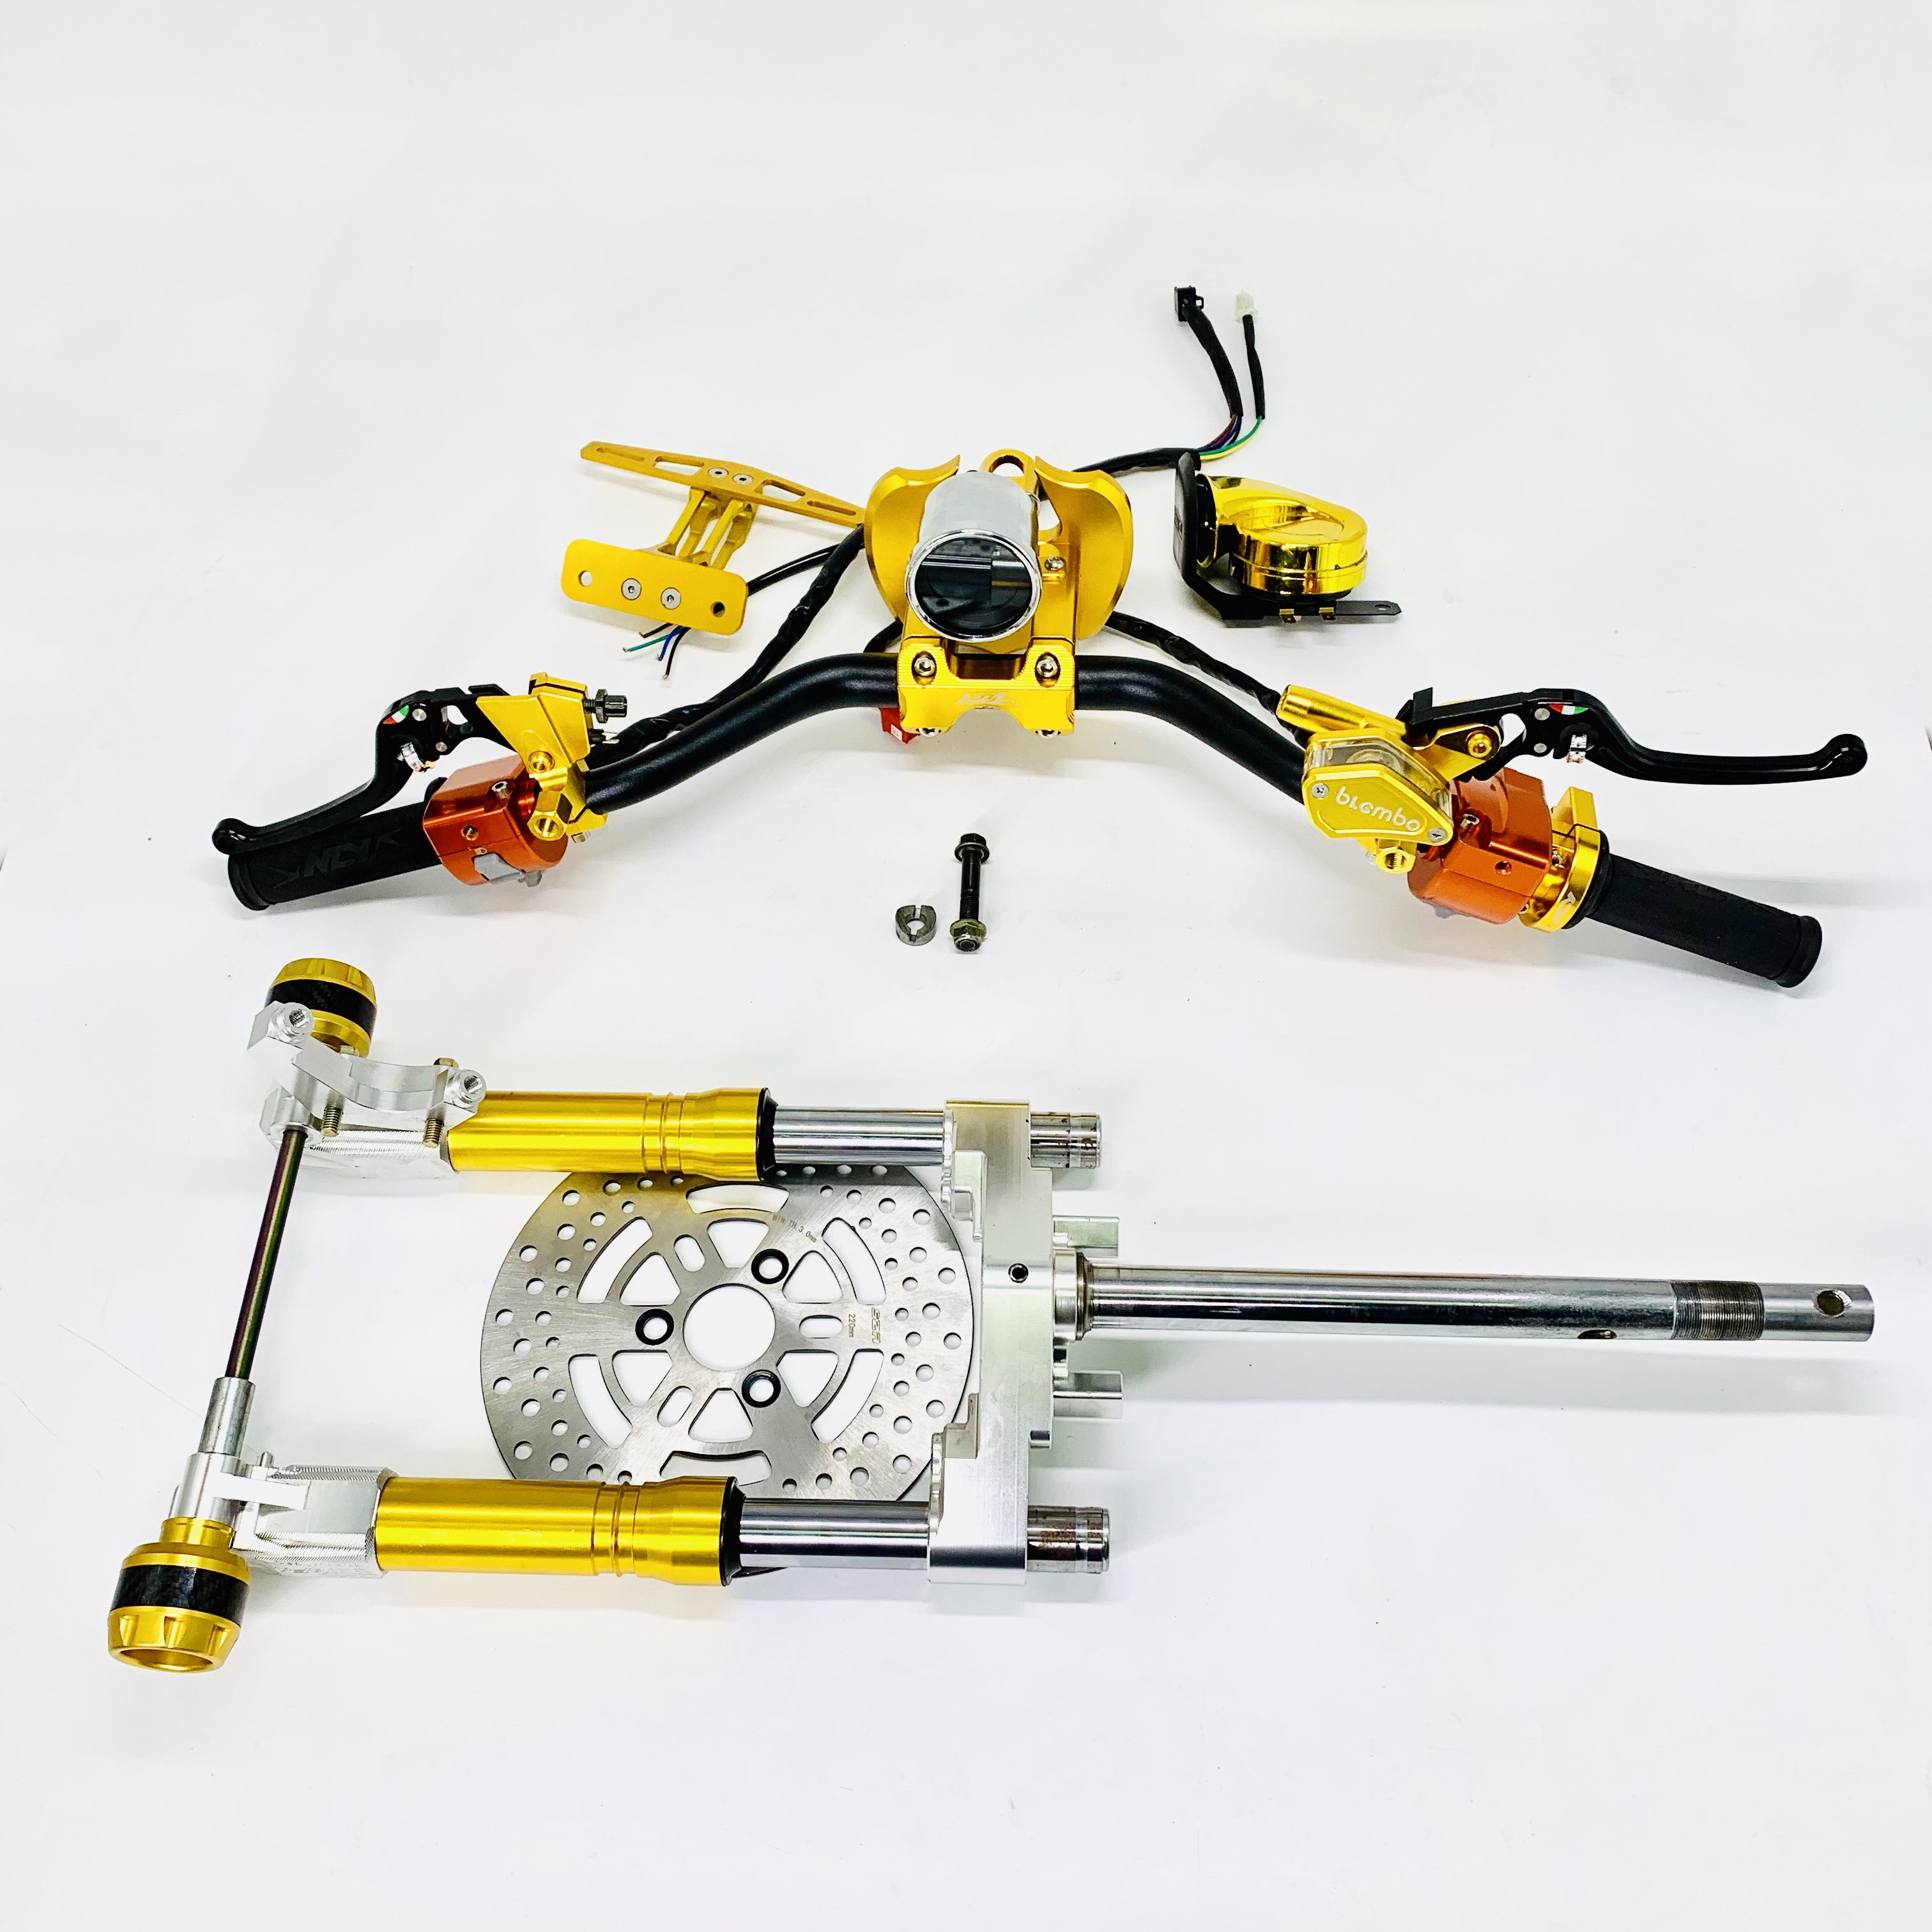 Steering Stem Kit Universal CNC Set Handlebar With Brake Disk Shock Absorbers Racing Tuning Parts For Jog Dio Cuxi Bws